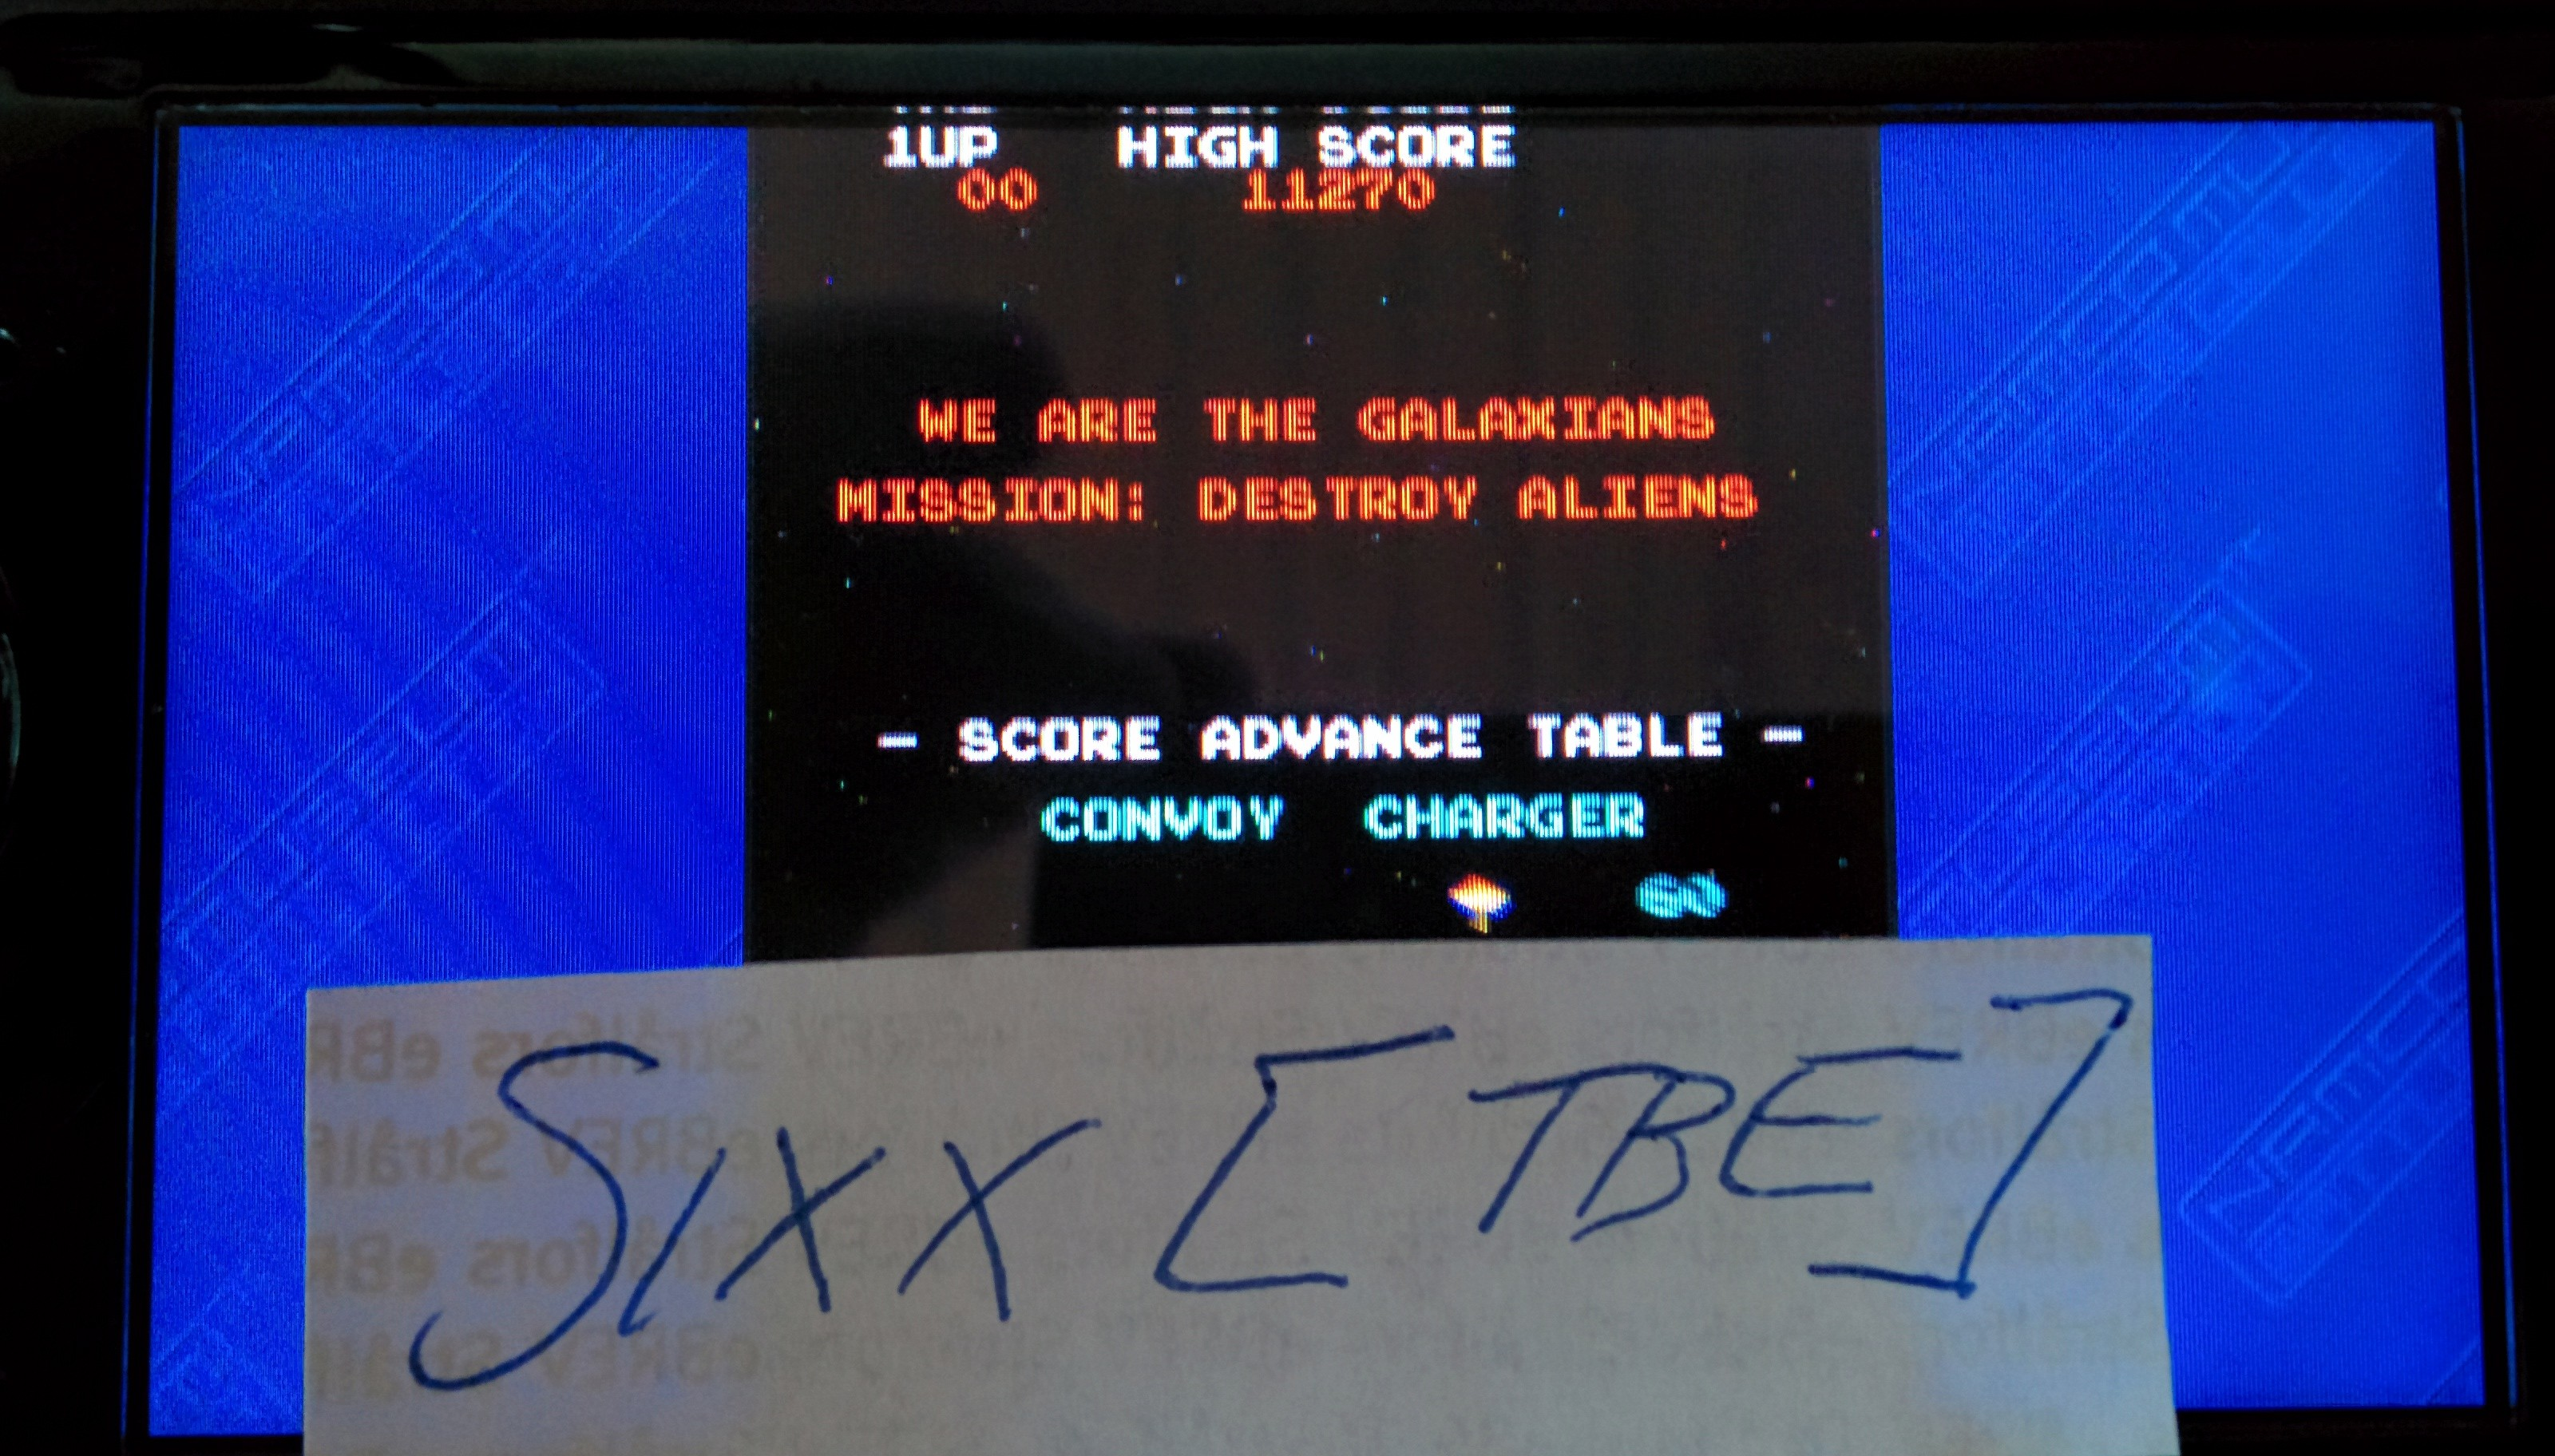 Sixx: Namco Museum: Battle Collection: Galaxian (PSP) 11,270 points on 2014-08-26 12:49:38